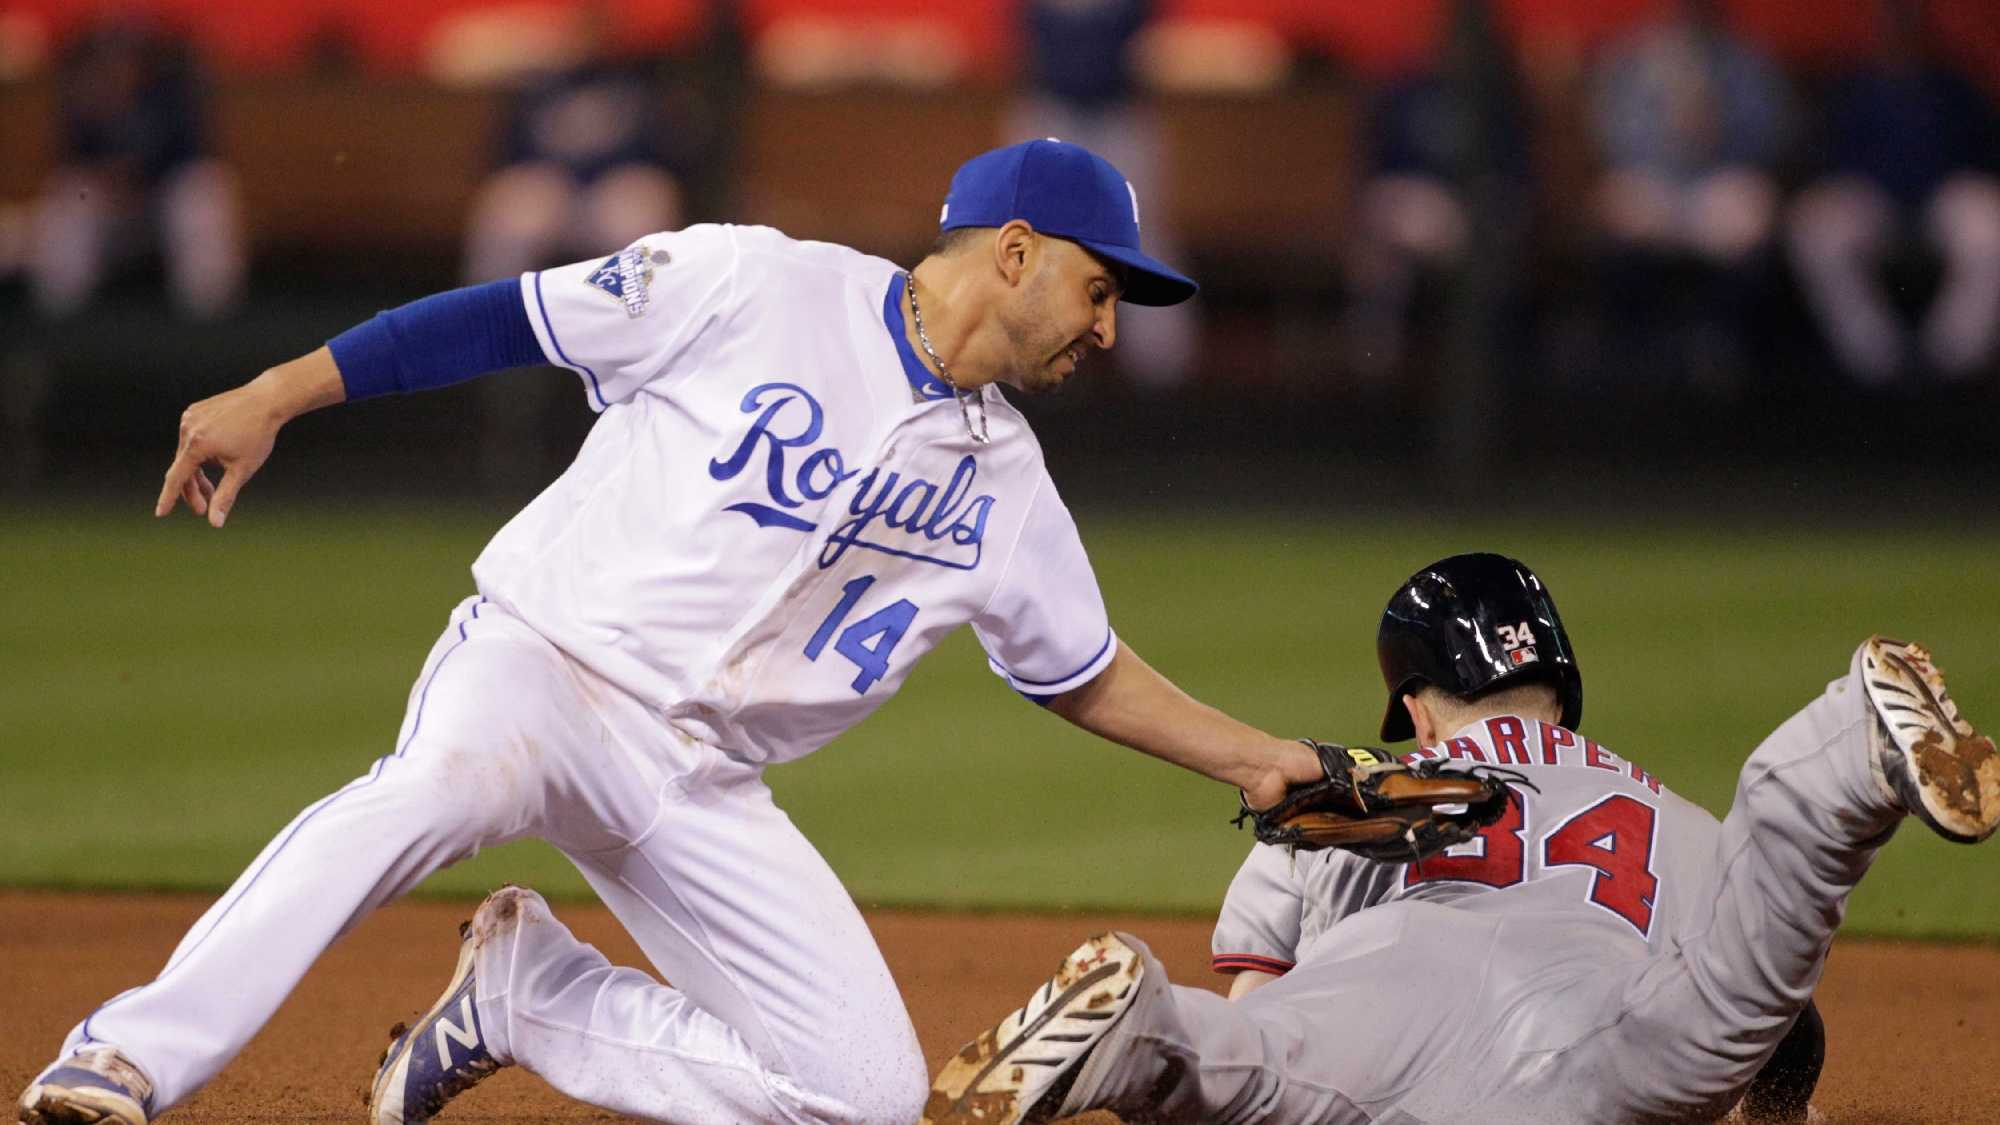 Kansas City Royals second baseman Omar Infante (14) tags out Washington Nationals Bryce Harper (34) as he attempts to steal second base in the sixth inning of a baseball game at Kauffman Stadium in Kansas City, Mo., Monday, May 2, 2016. (AP Photo/Colin E. Braley)